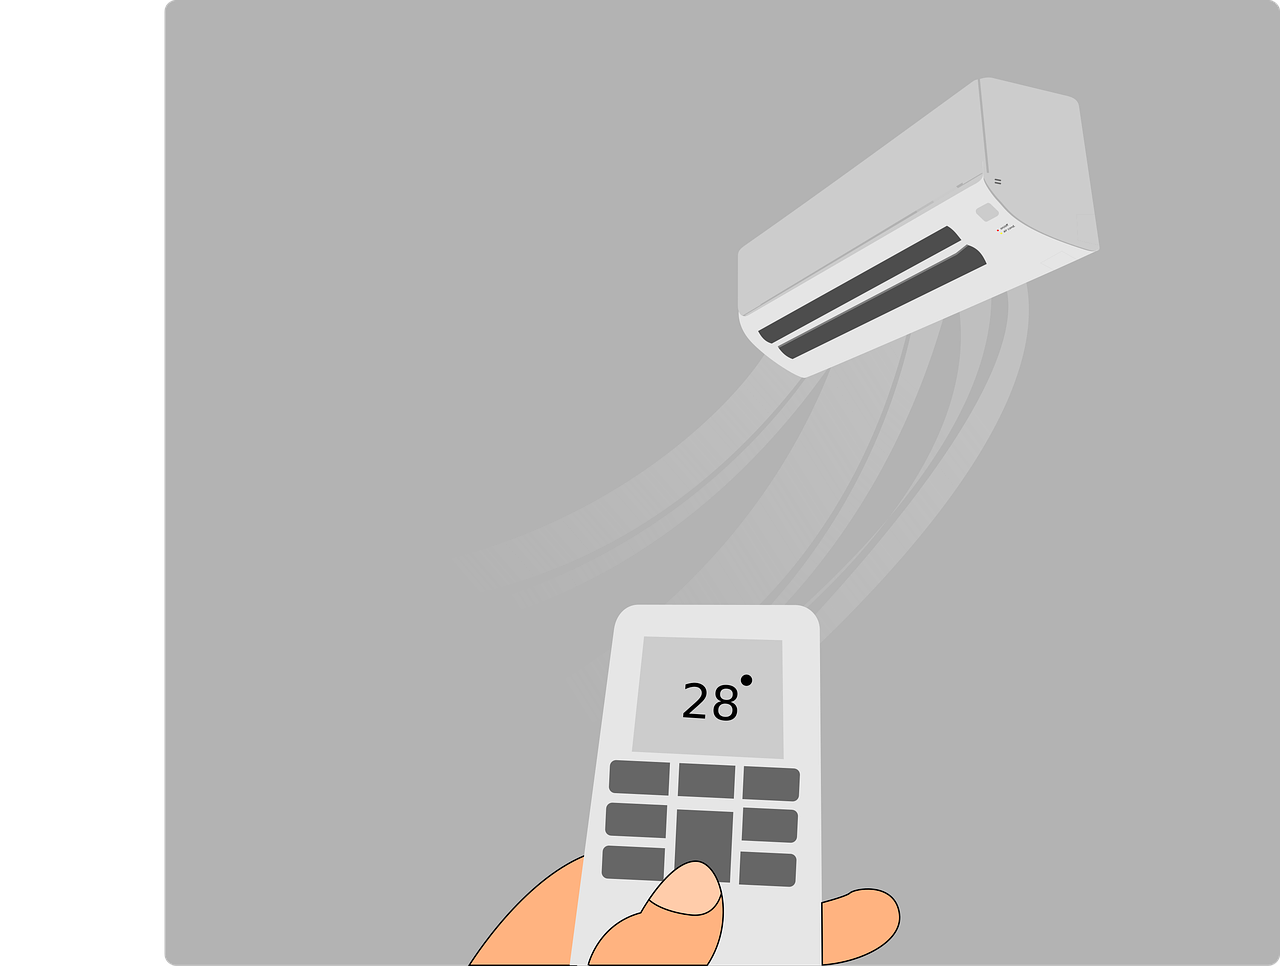 image - Don't Do Without Heat and Air What to Look for When Hiring HVAC Companies